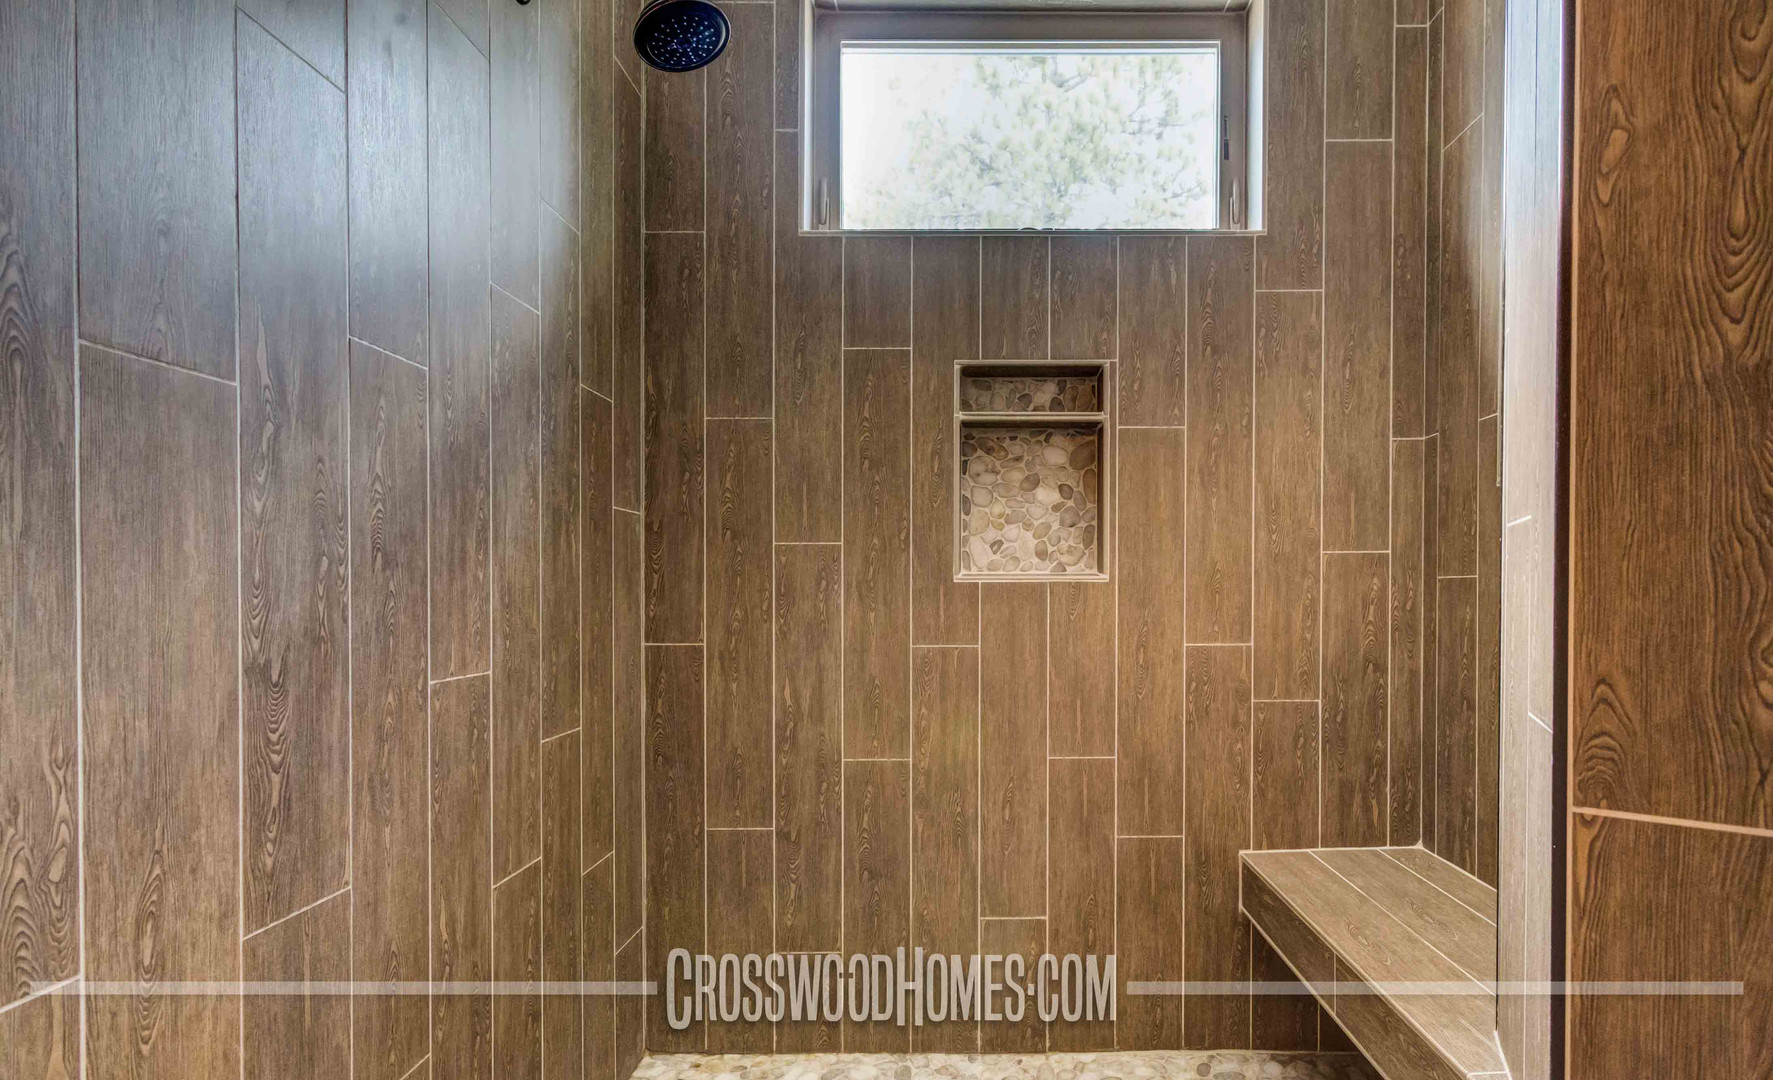 Woodland Rustic by Crosswood Homes (43).